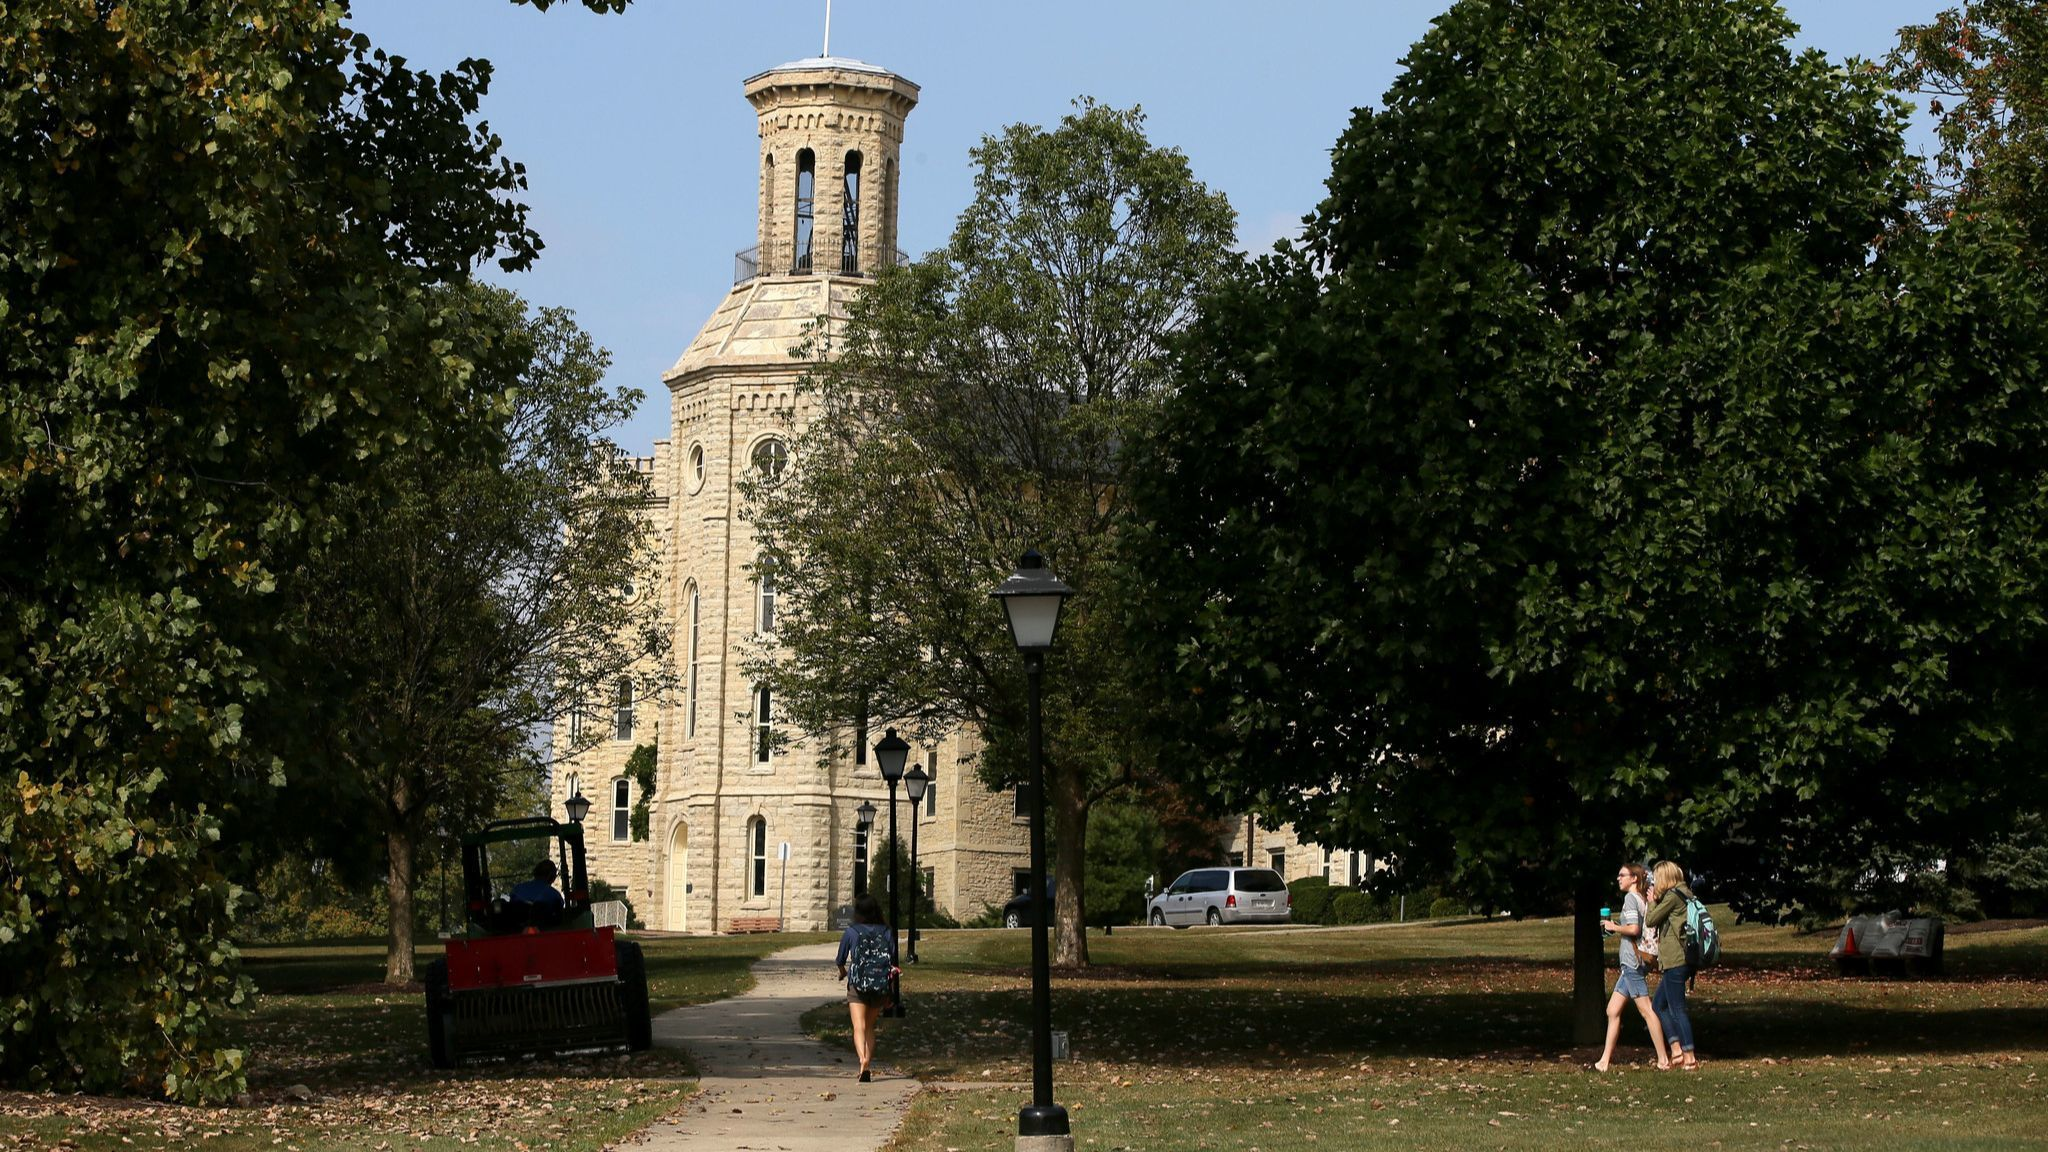 Settlement reached in lawsuit filed over Wheaton College football hazing incident | Chicago Tribune